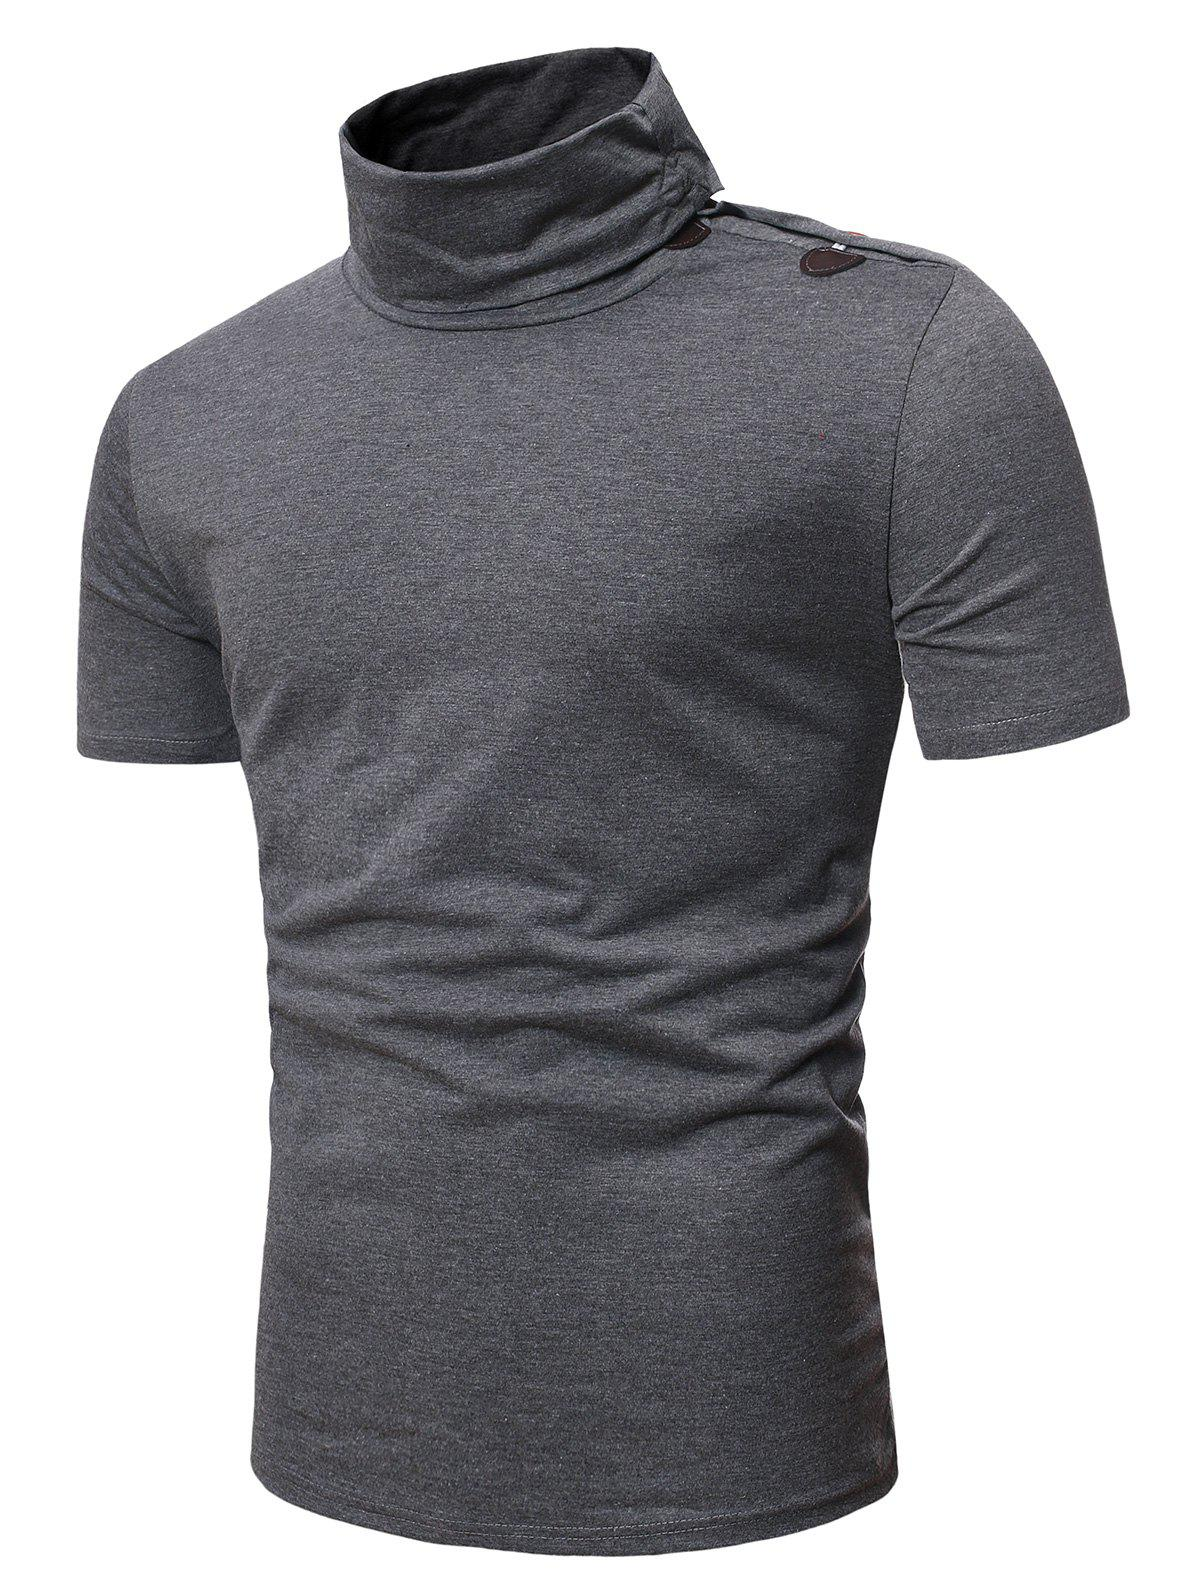 Fancy Turtleneck Horn Button Short Sleeve Slim Fit T Shirt